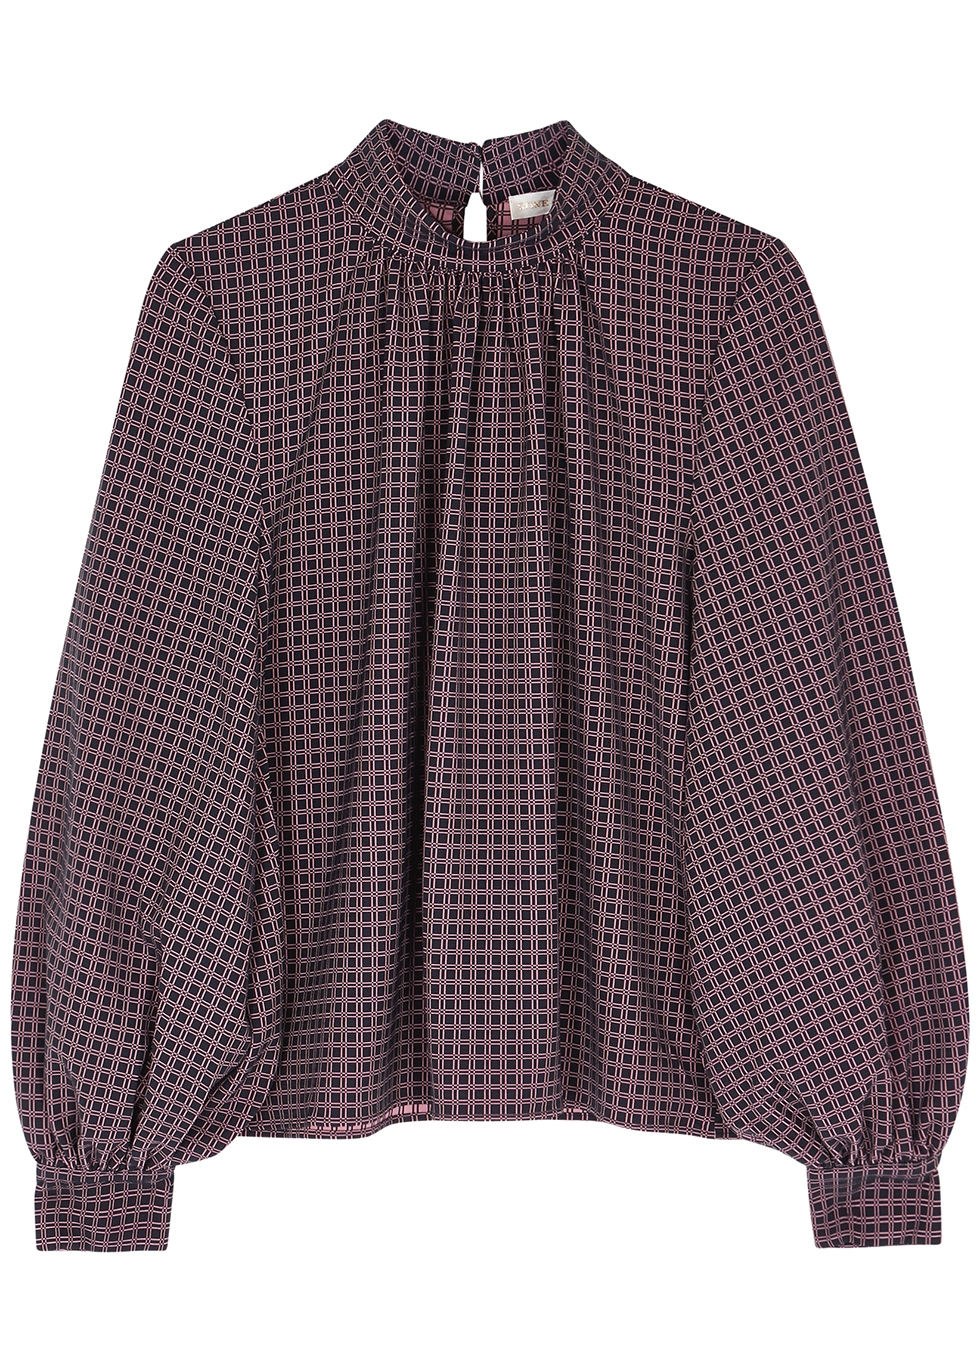 Eddy checked blouse